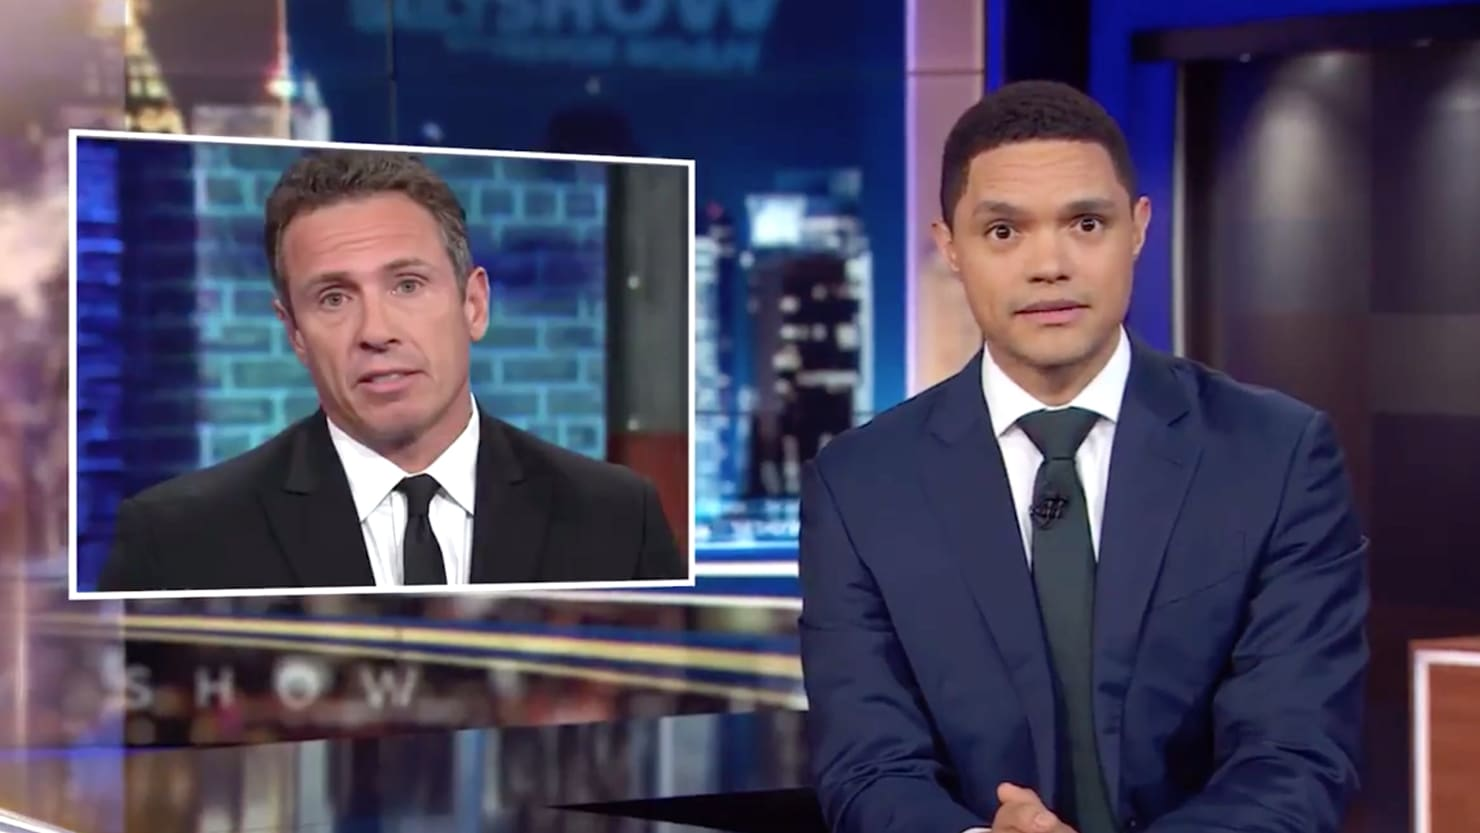 'Daily Show' Mocks CNN's Chris Cuomo: 'Fredo' Is Not the 'N-Word'